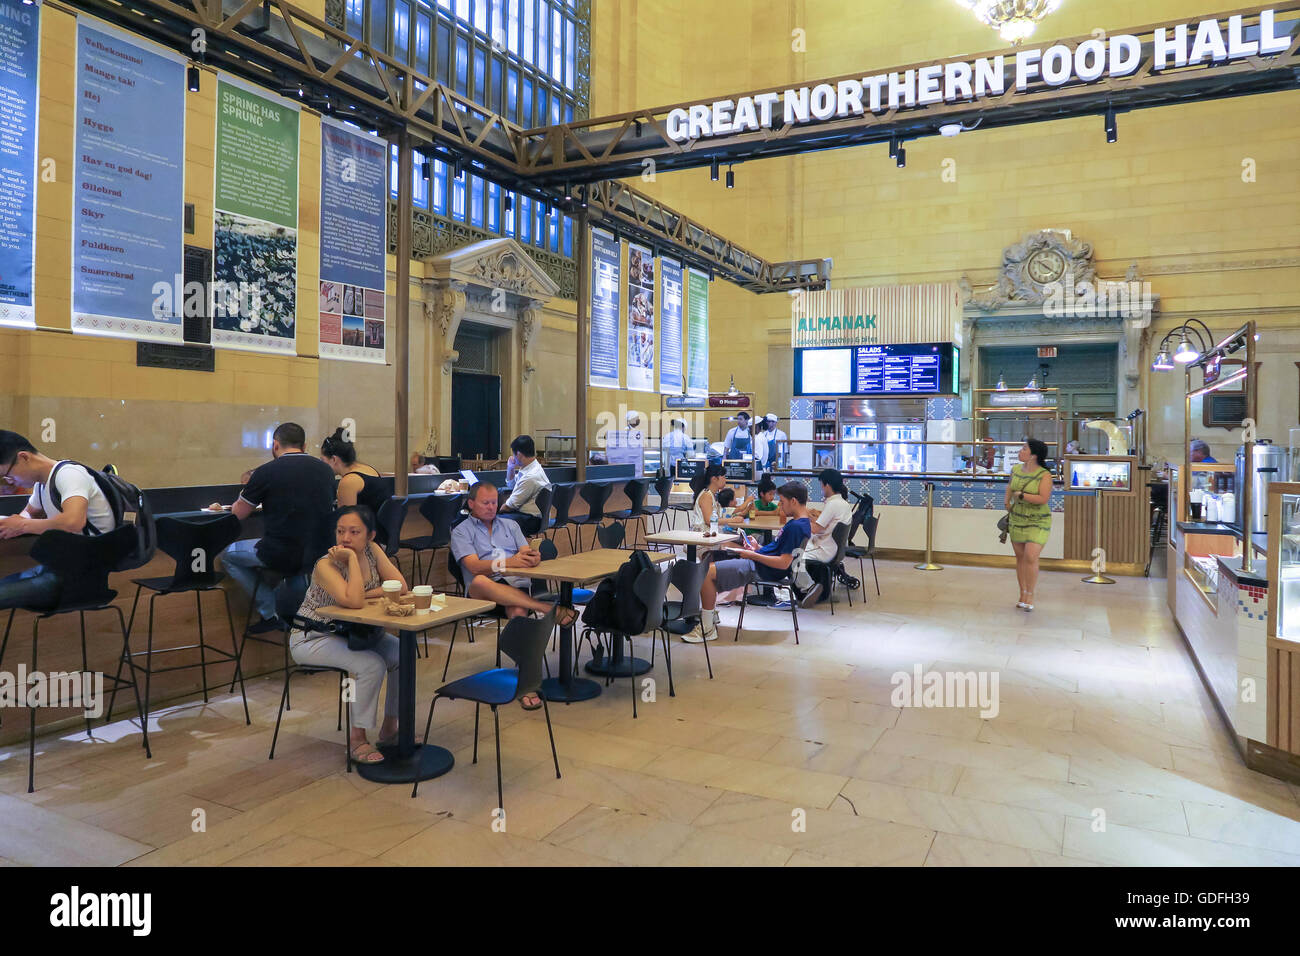 Great Northern Food Hall great northern food hall in grand central terminal, nyc, usa stock